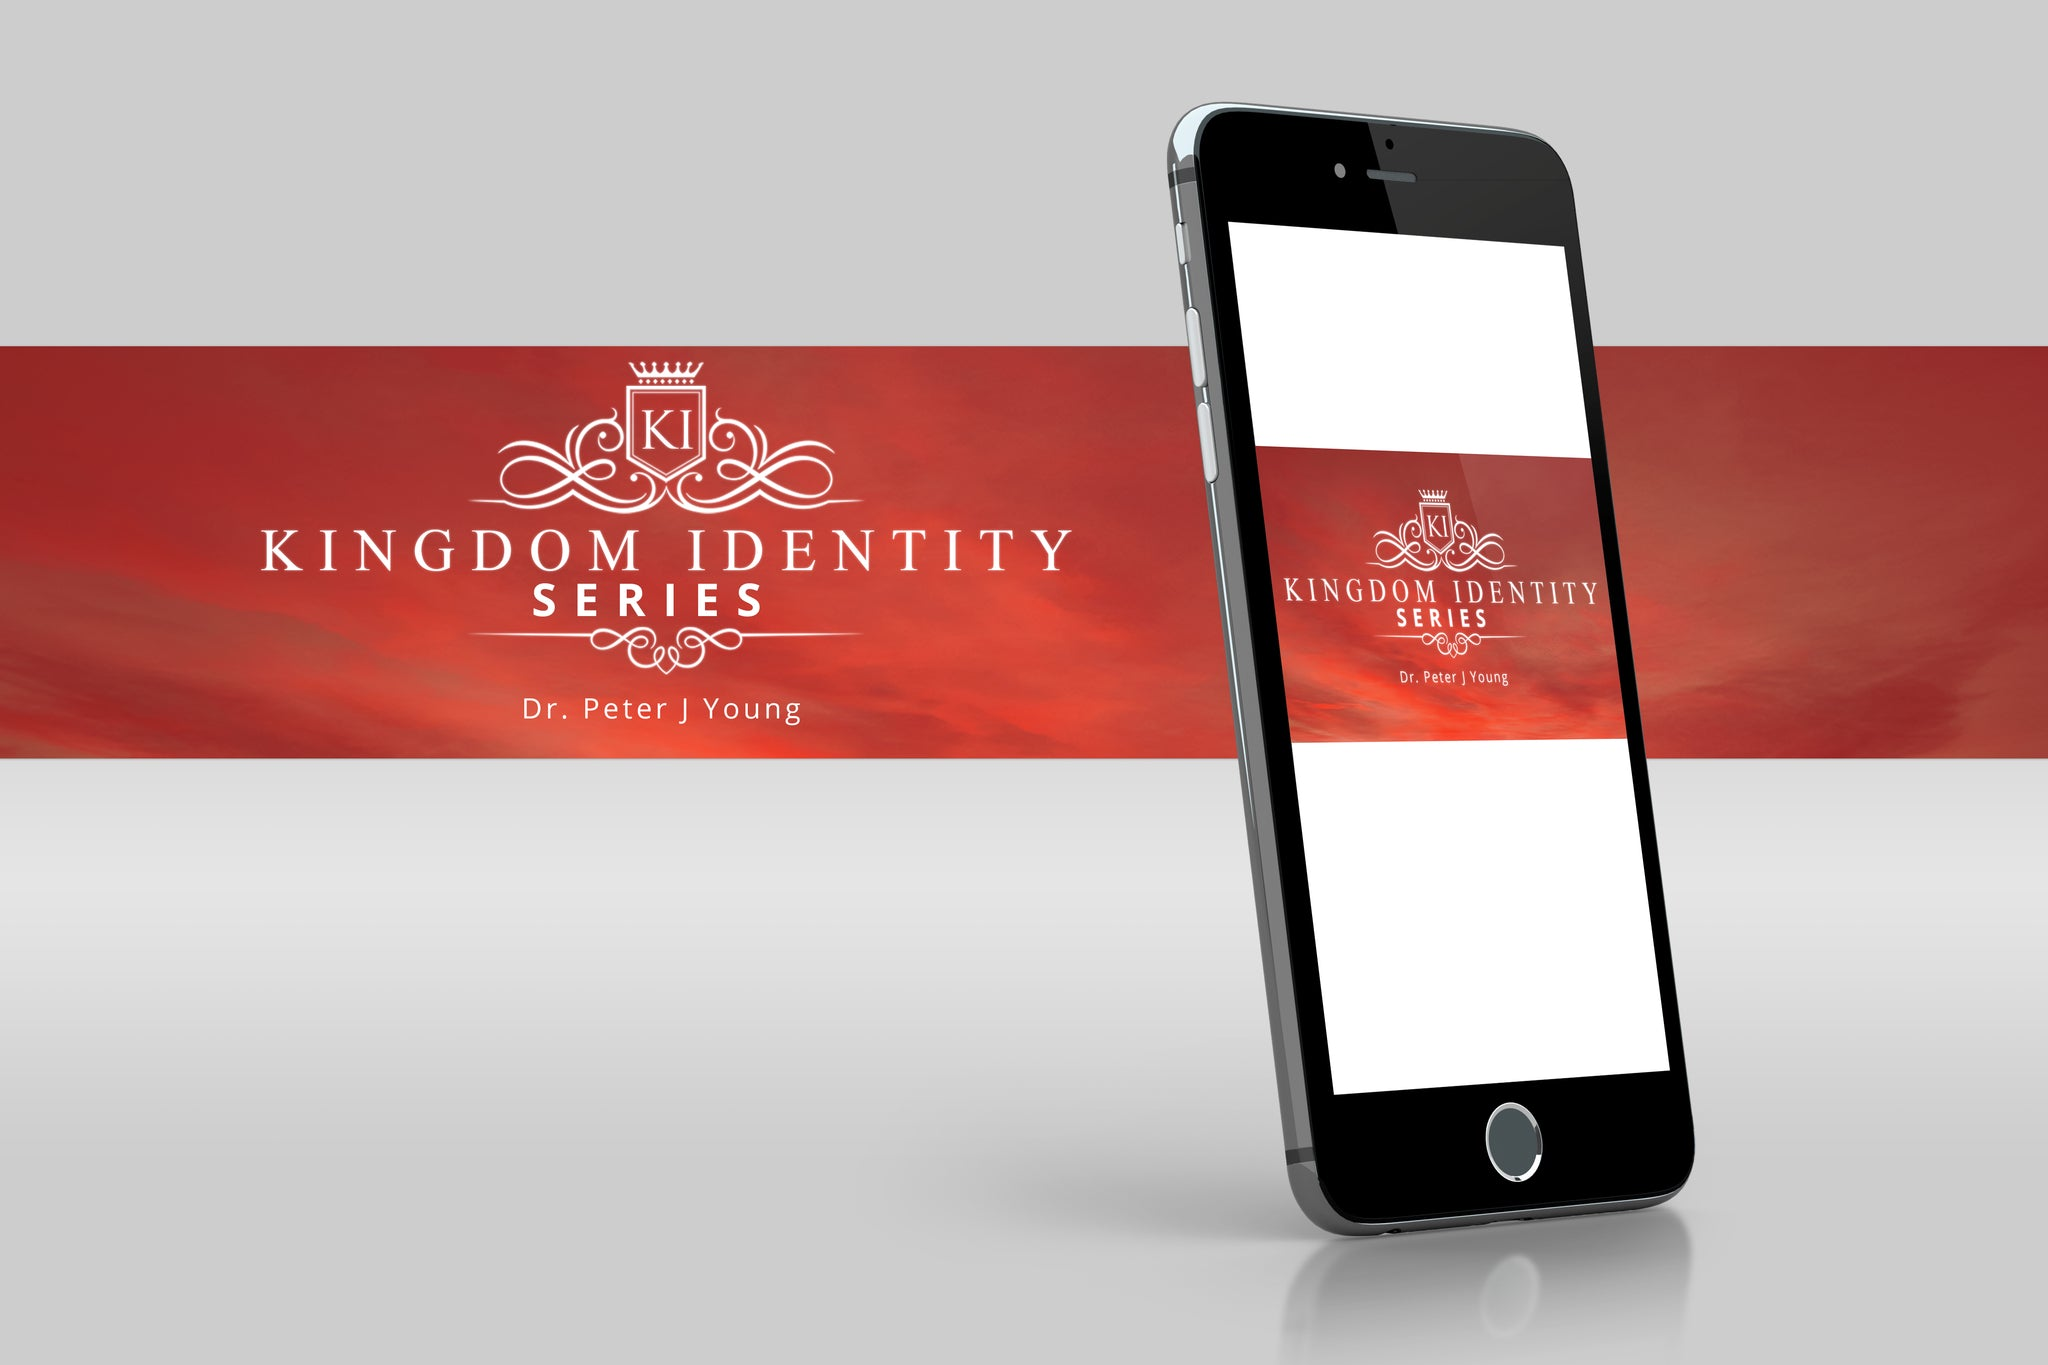 Kingdom Identity Series: (Audio) with Peter J. Young